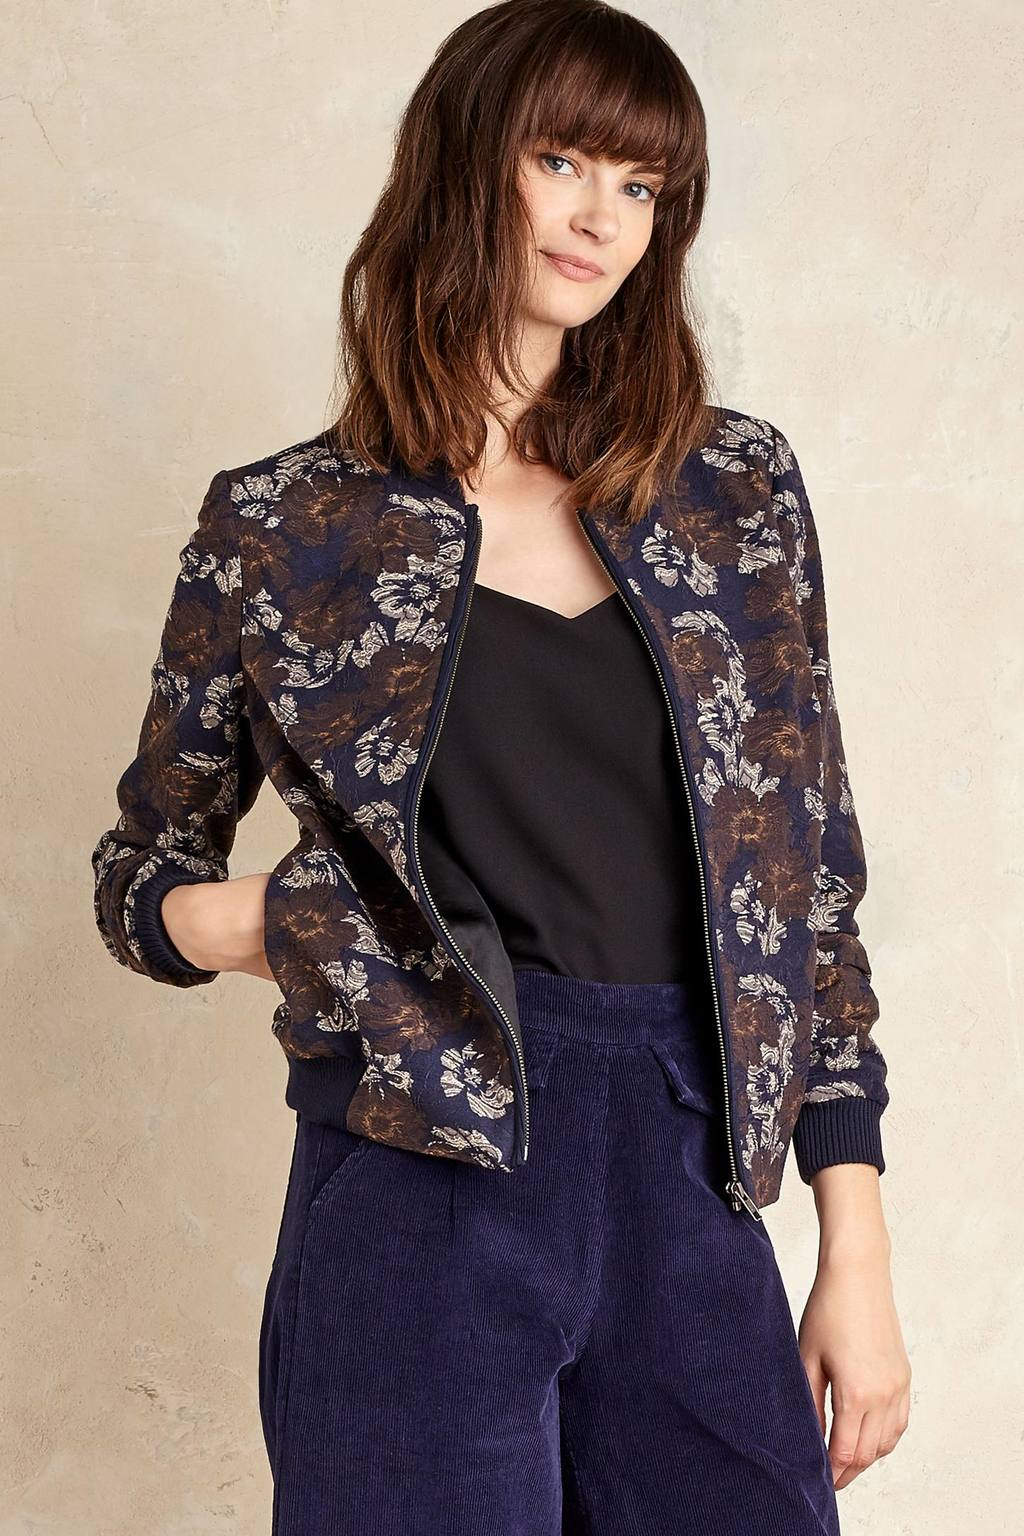 Aiden Floral Bomber Jacket, Navy - collar: round collar/collarless; style: bomber; predominant colour: navy; secondary colour: tan; occasions: casual, creative work; length: standard; fit: straight cut (boxy); fibres: viscose/rayon - stretch; sleeve length: long sleeve; sleeve style: standard; collar break: high; pattern type: fabric; pattern: patterned/print; texture group: other - light to midweight; season: a/w 2016; wardrobe: highlight